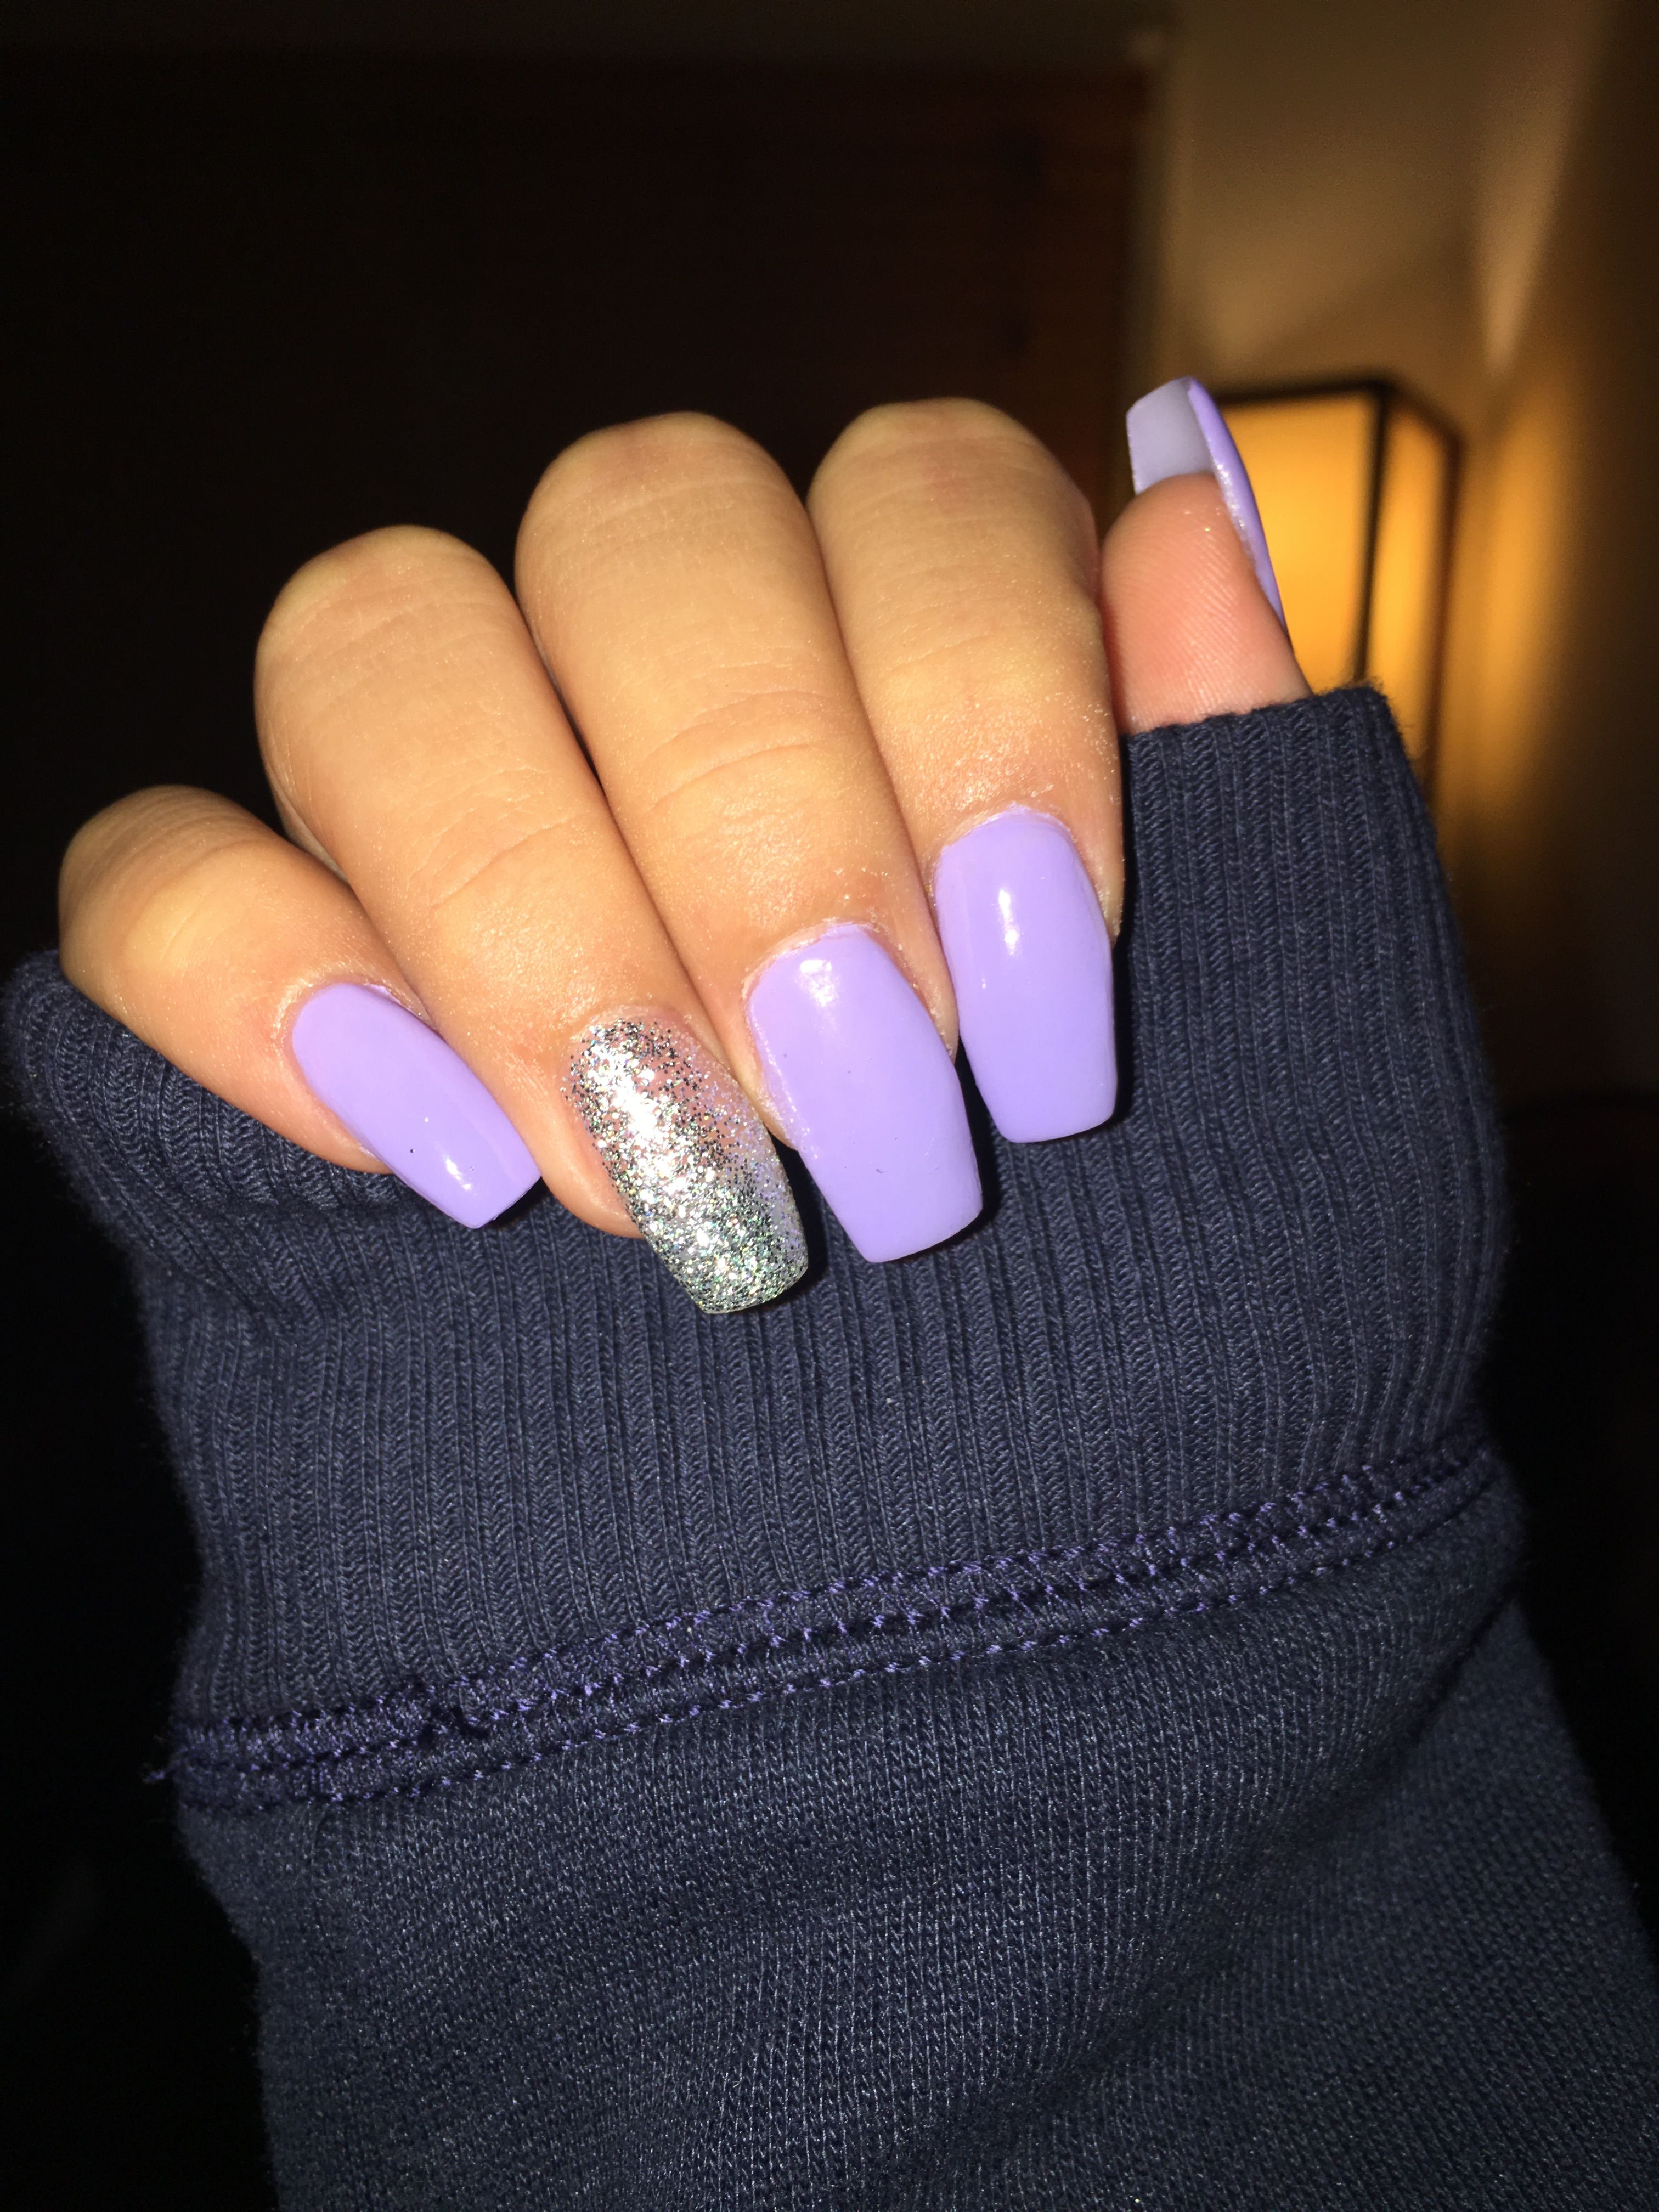 lavender nails with glitter na l